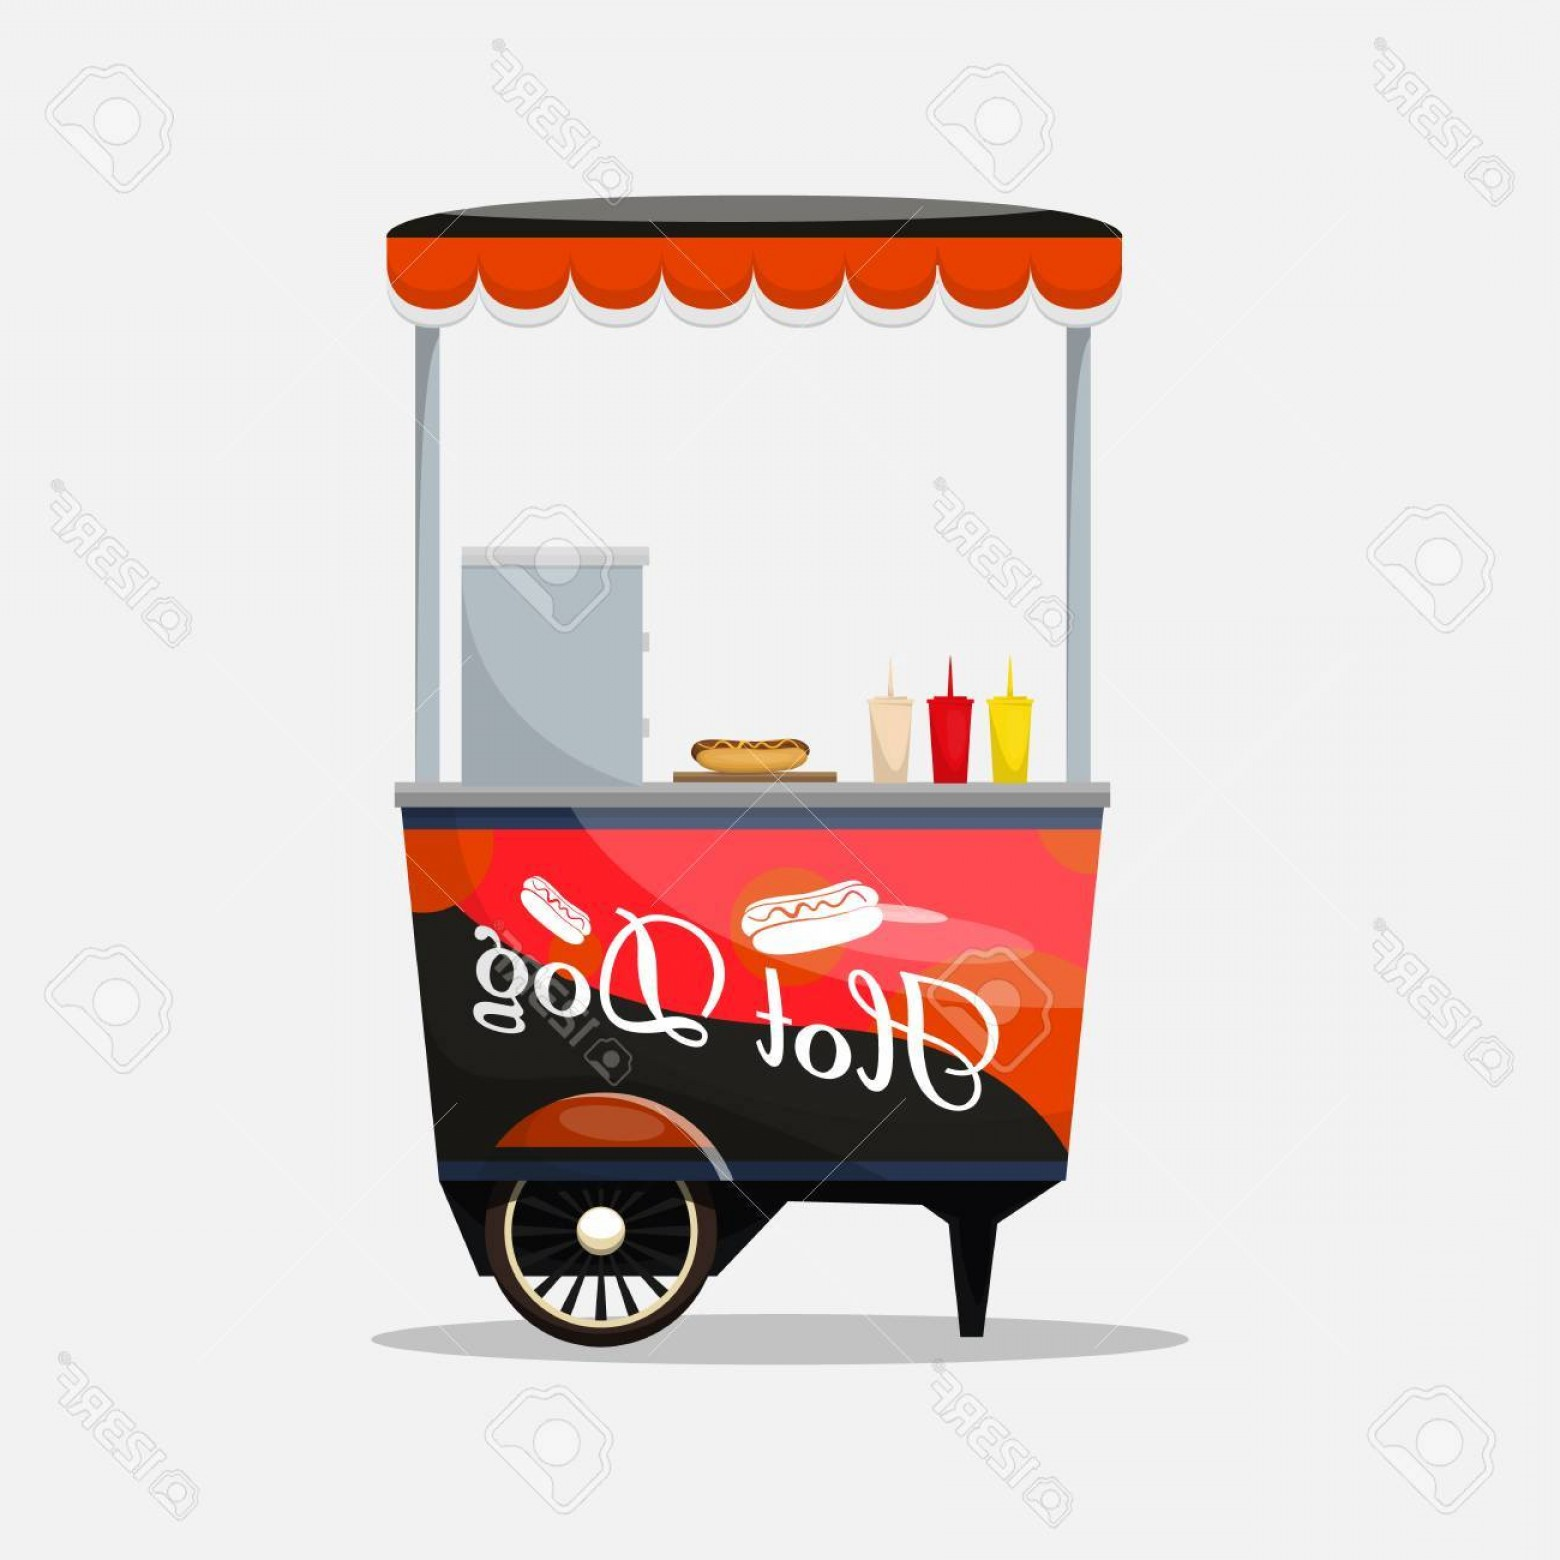 Hot Wheels Vector Art: Photostock Vector Hot Dog Cart Kiosk On Wheels Retailers Fast Snack Breakfast Fast Food And Flat Style Isolated On Whi